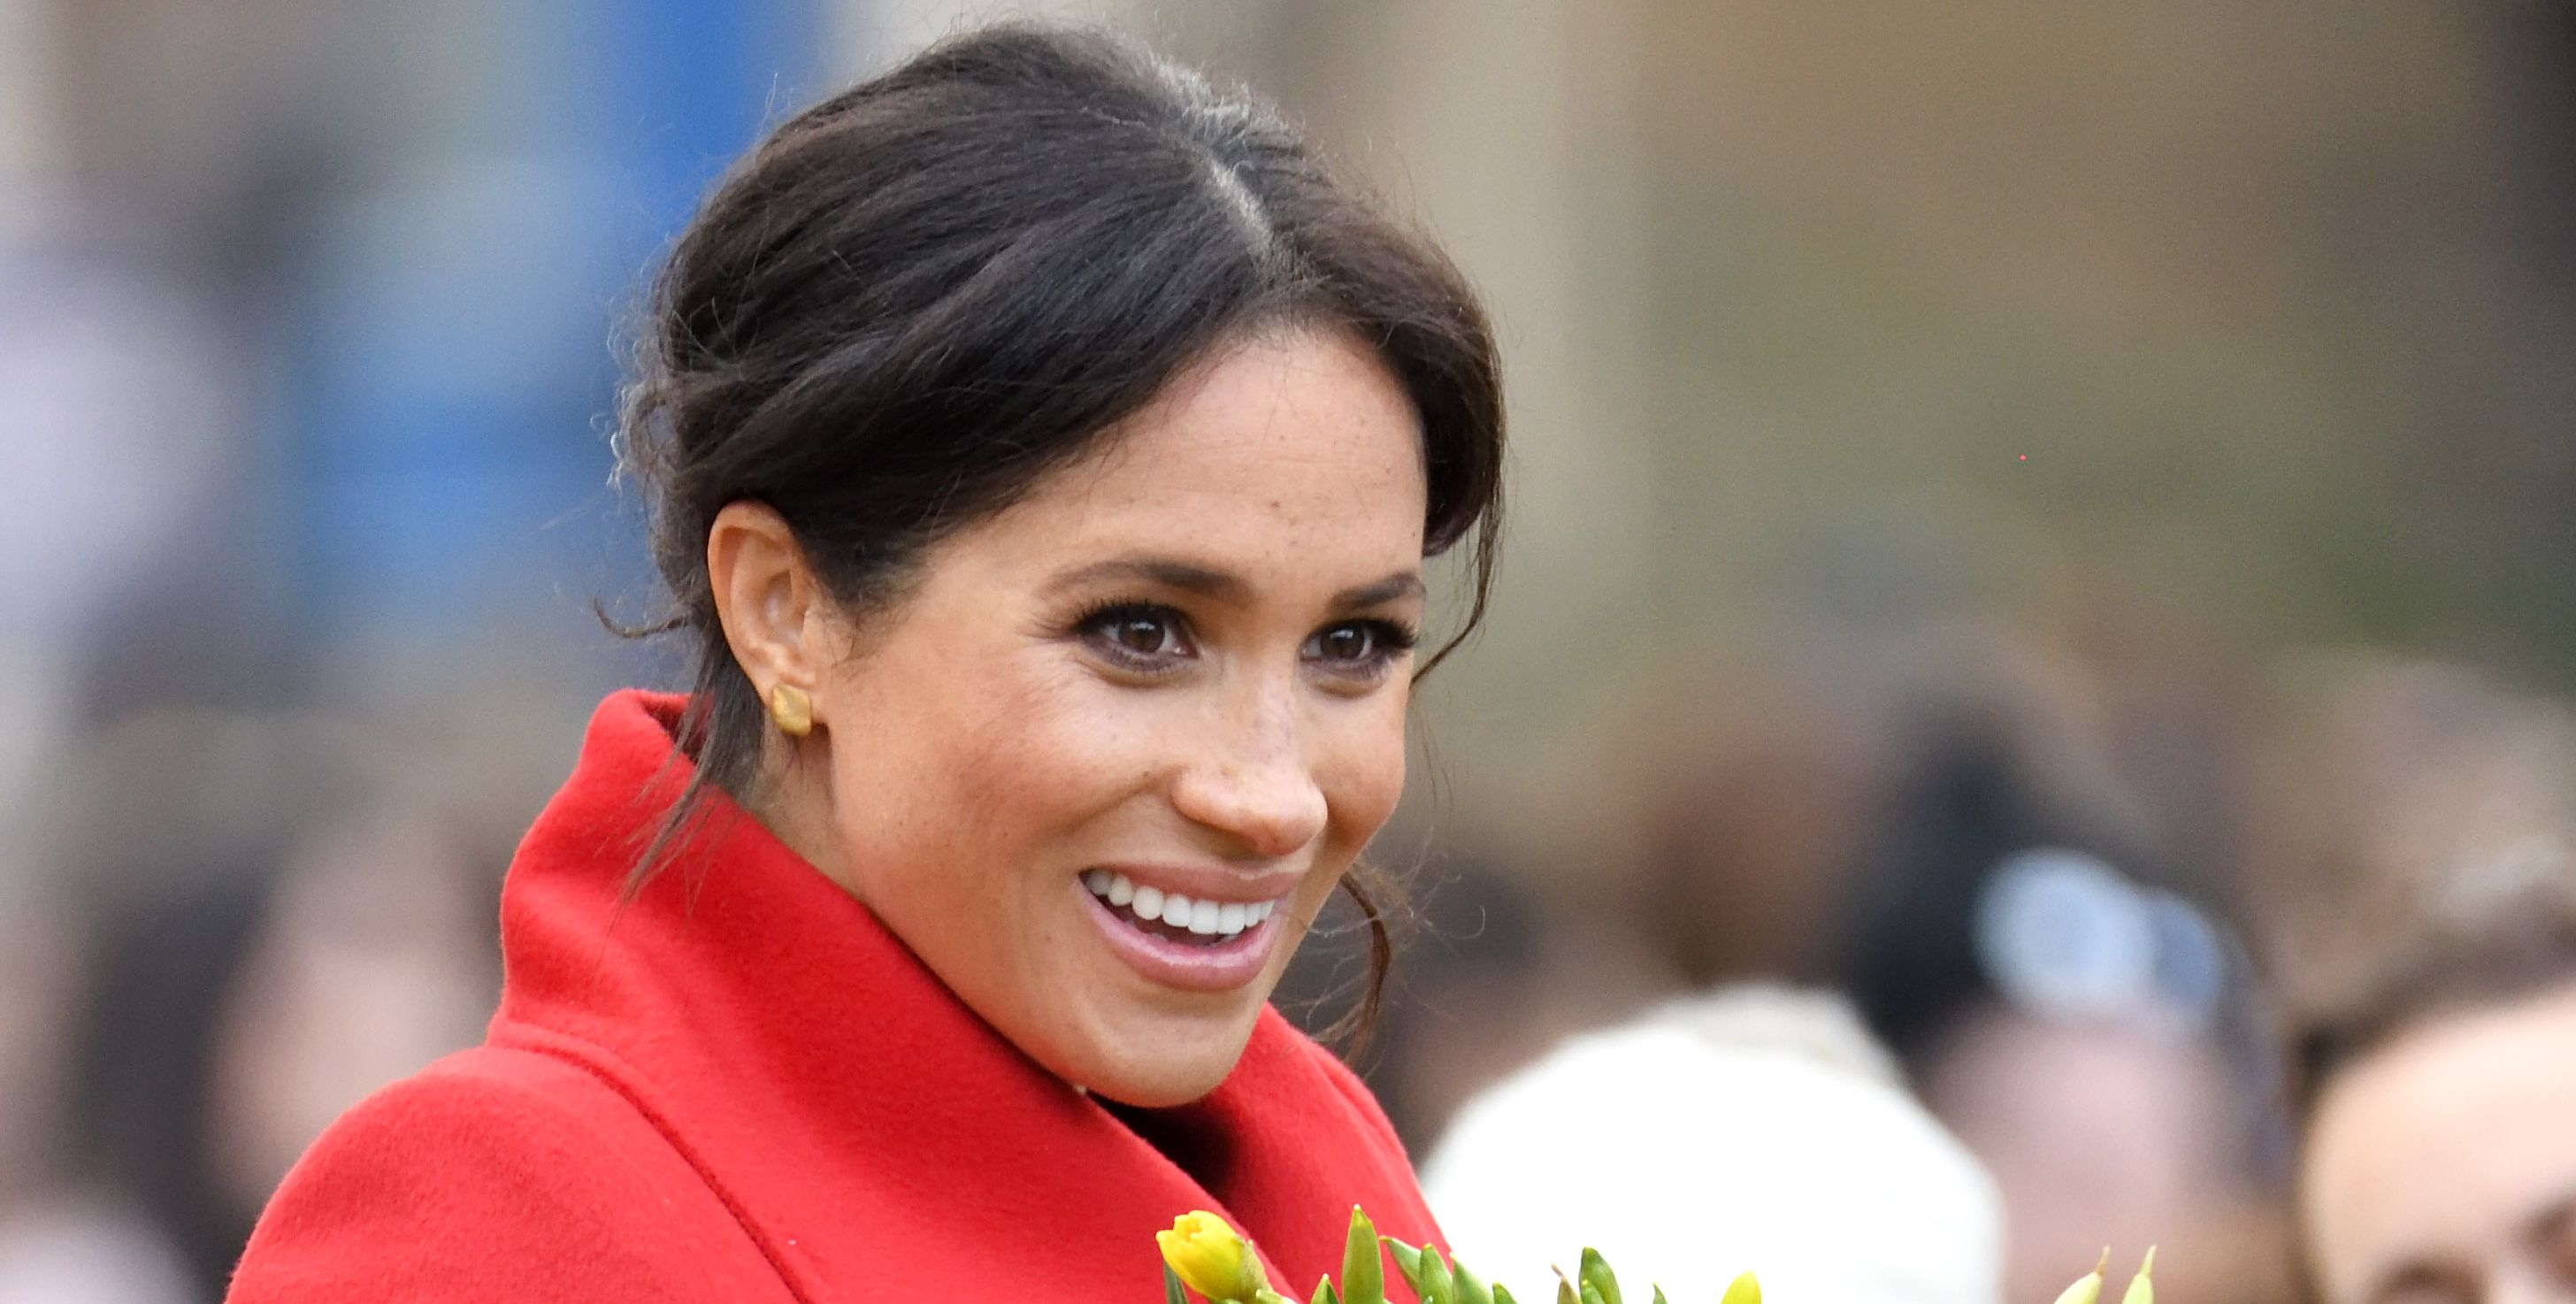 Of Course Meghan Markle Knows How to Make the Perfect Avocado Toast